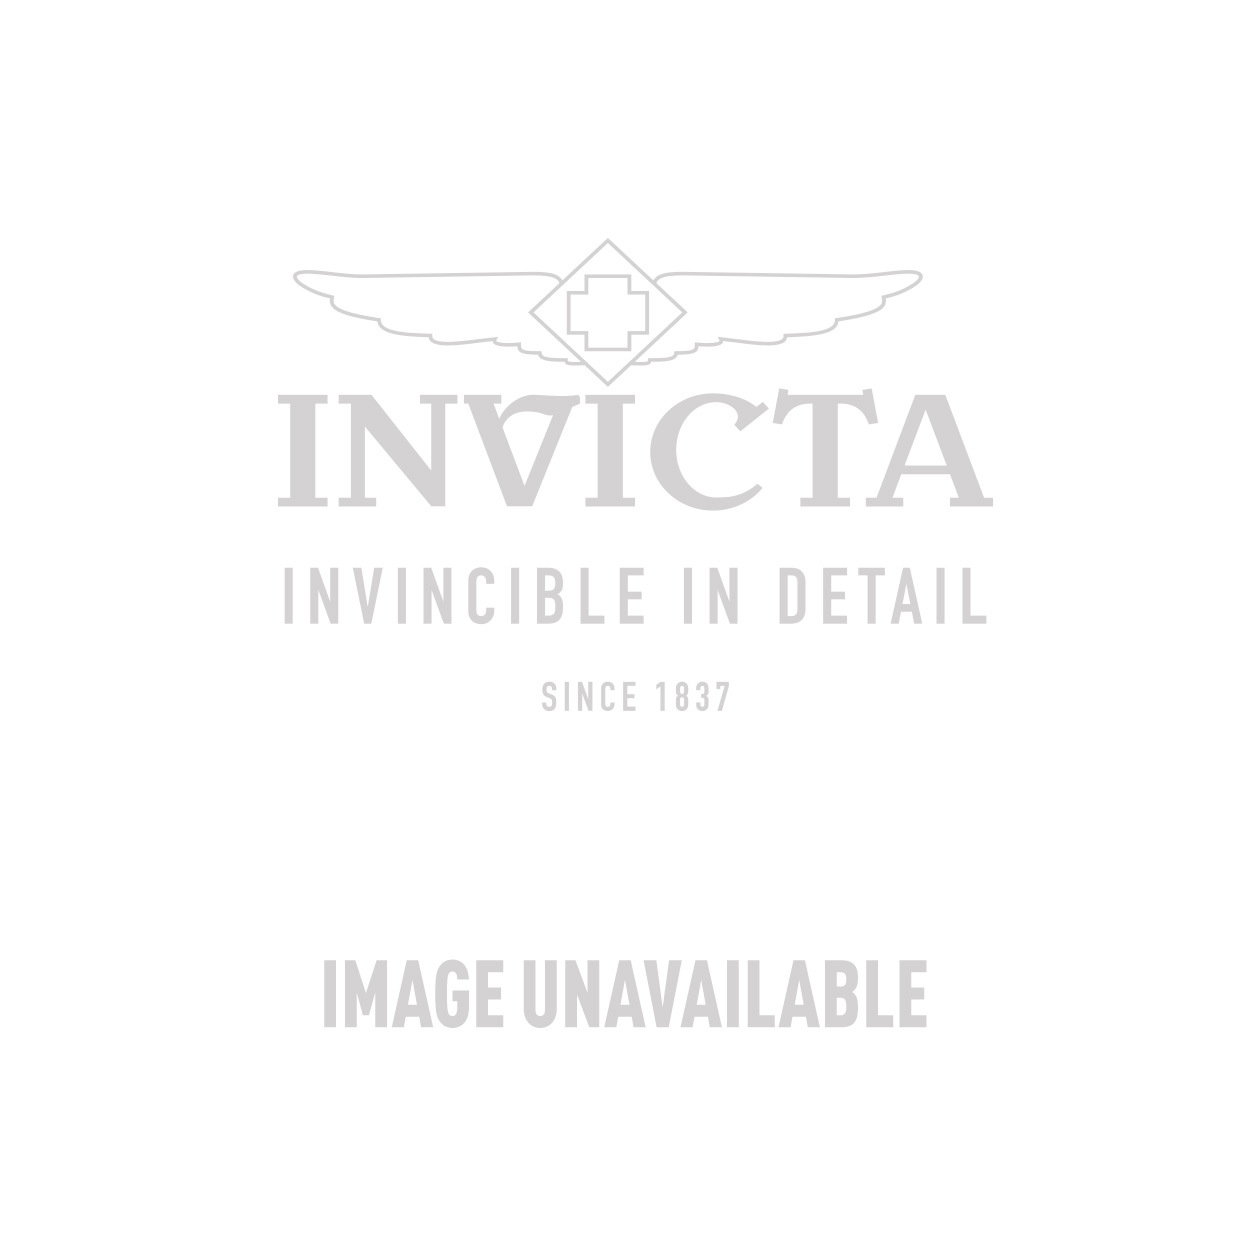 Invicta Pro Diver Swiss Movement Quartz Watch - Stainless Steel case with Black tone Polyurethane band - Model 12571